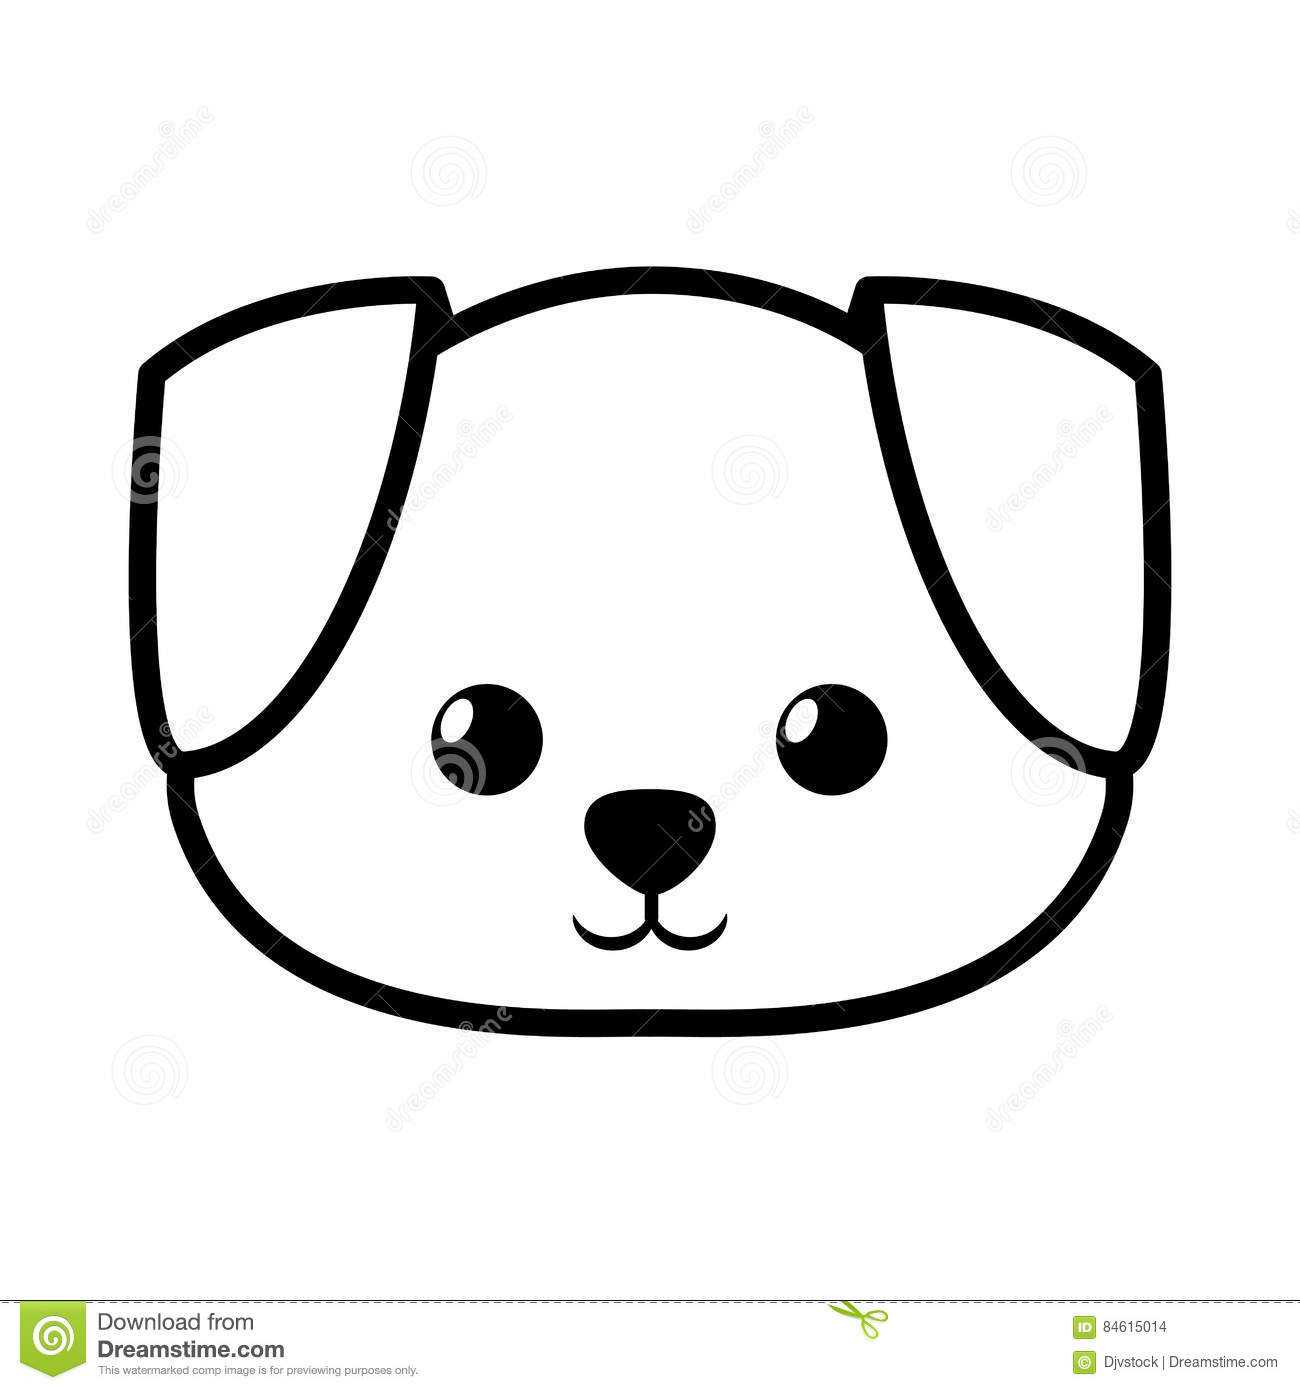 Line Drawing Of A Dog S Face : Line drawing dog face free german shepherd lines by s